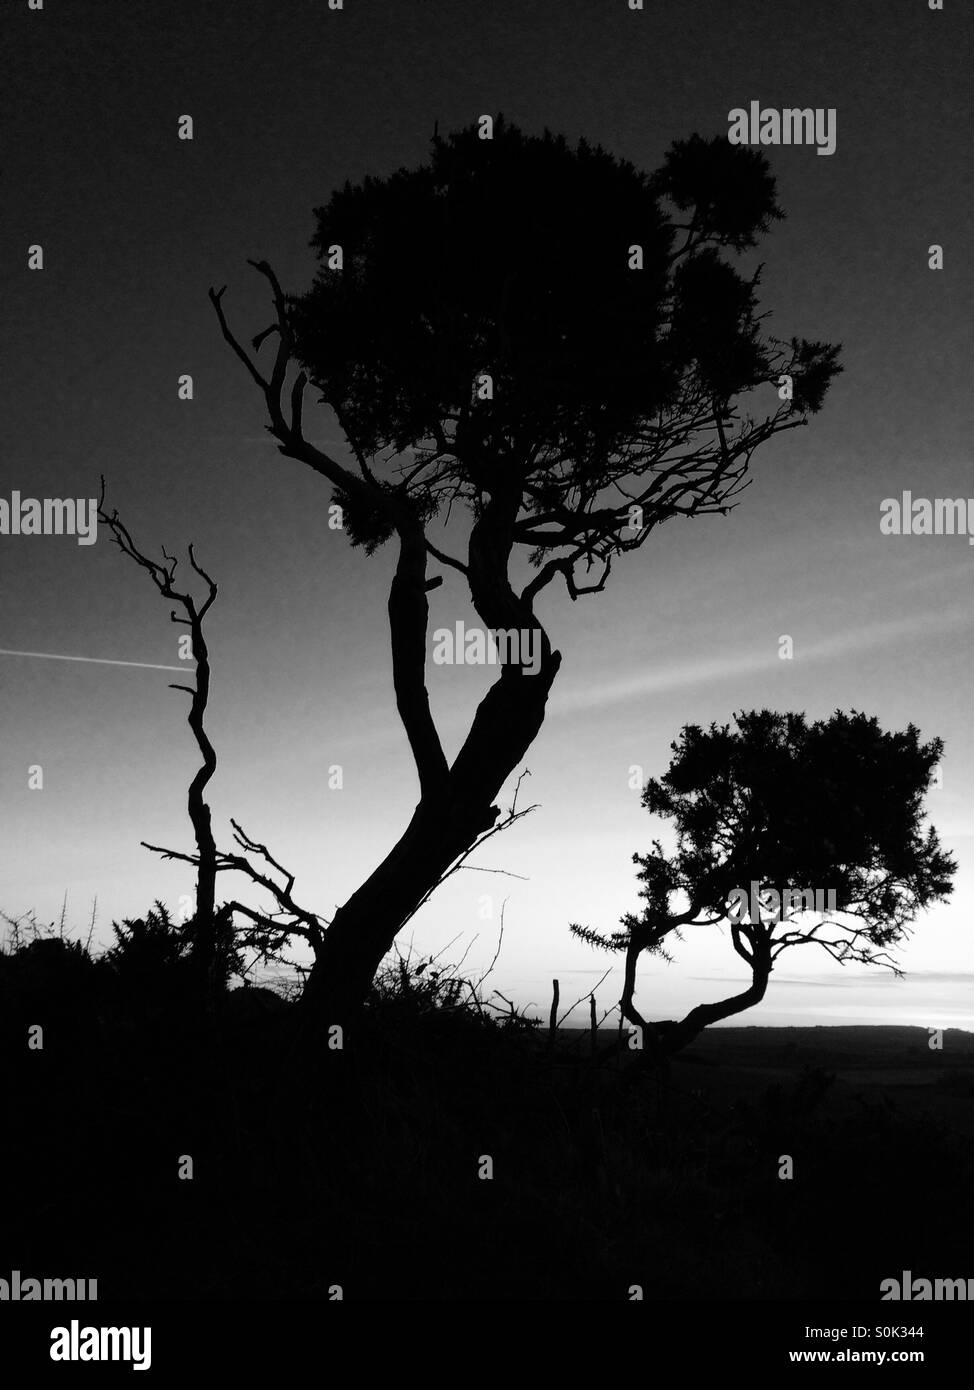 Trees at dusk, silhouette, black and white, Cornwall, England, UK. - Stock Image